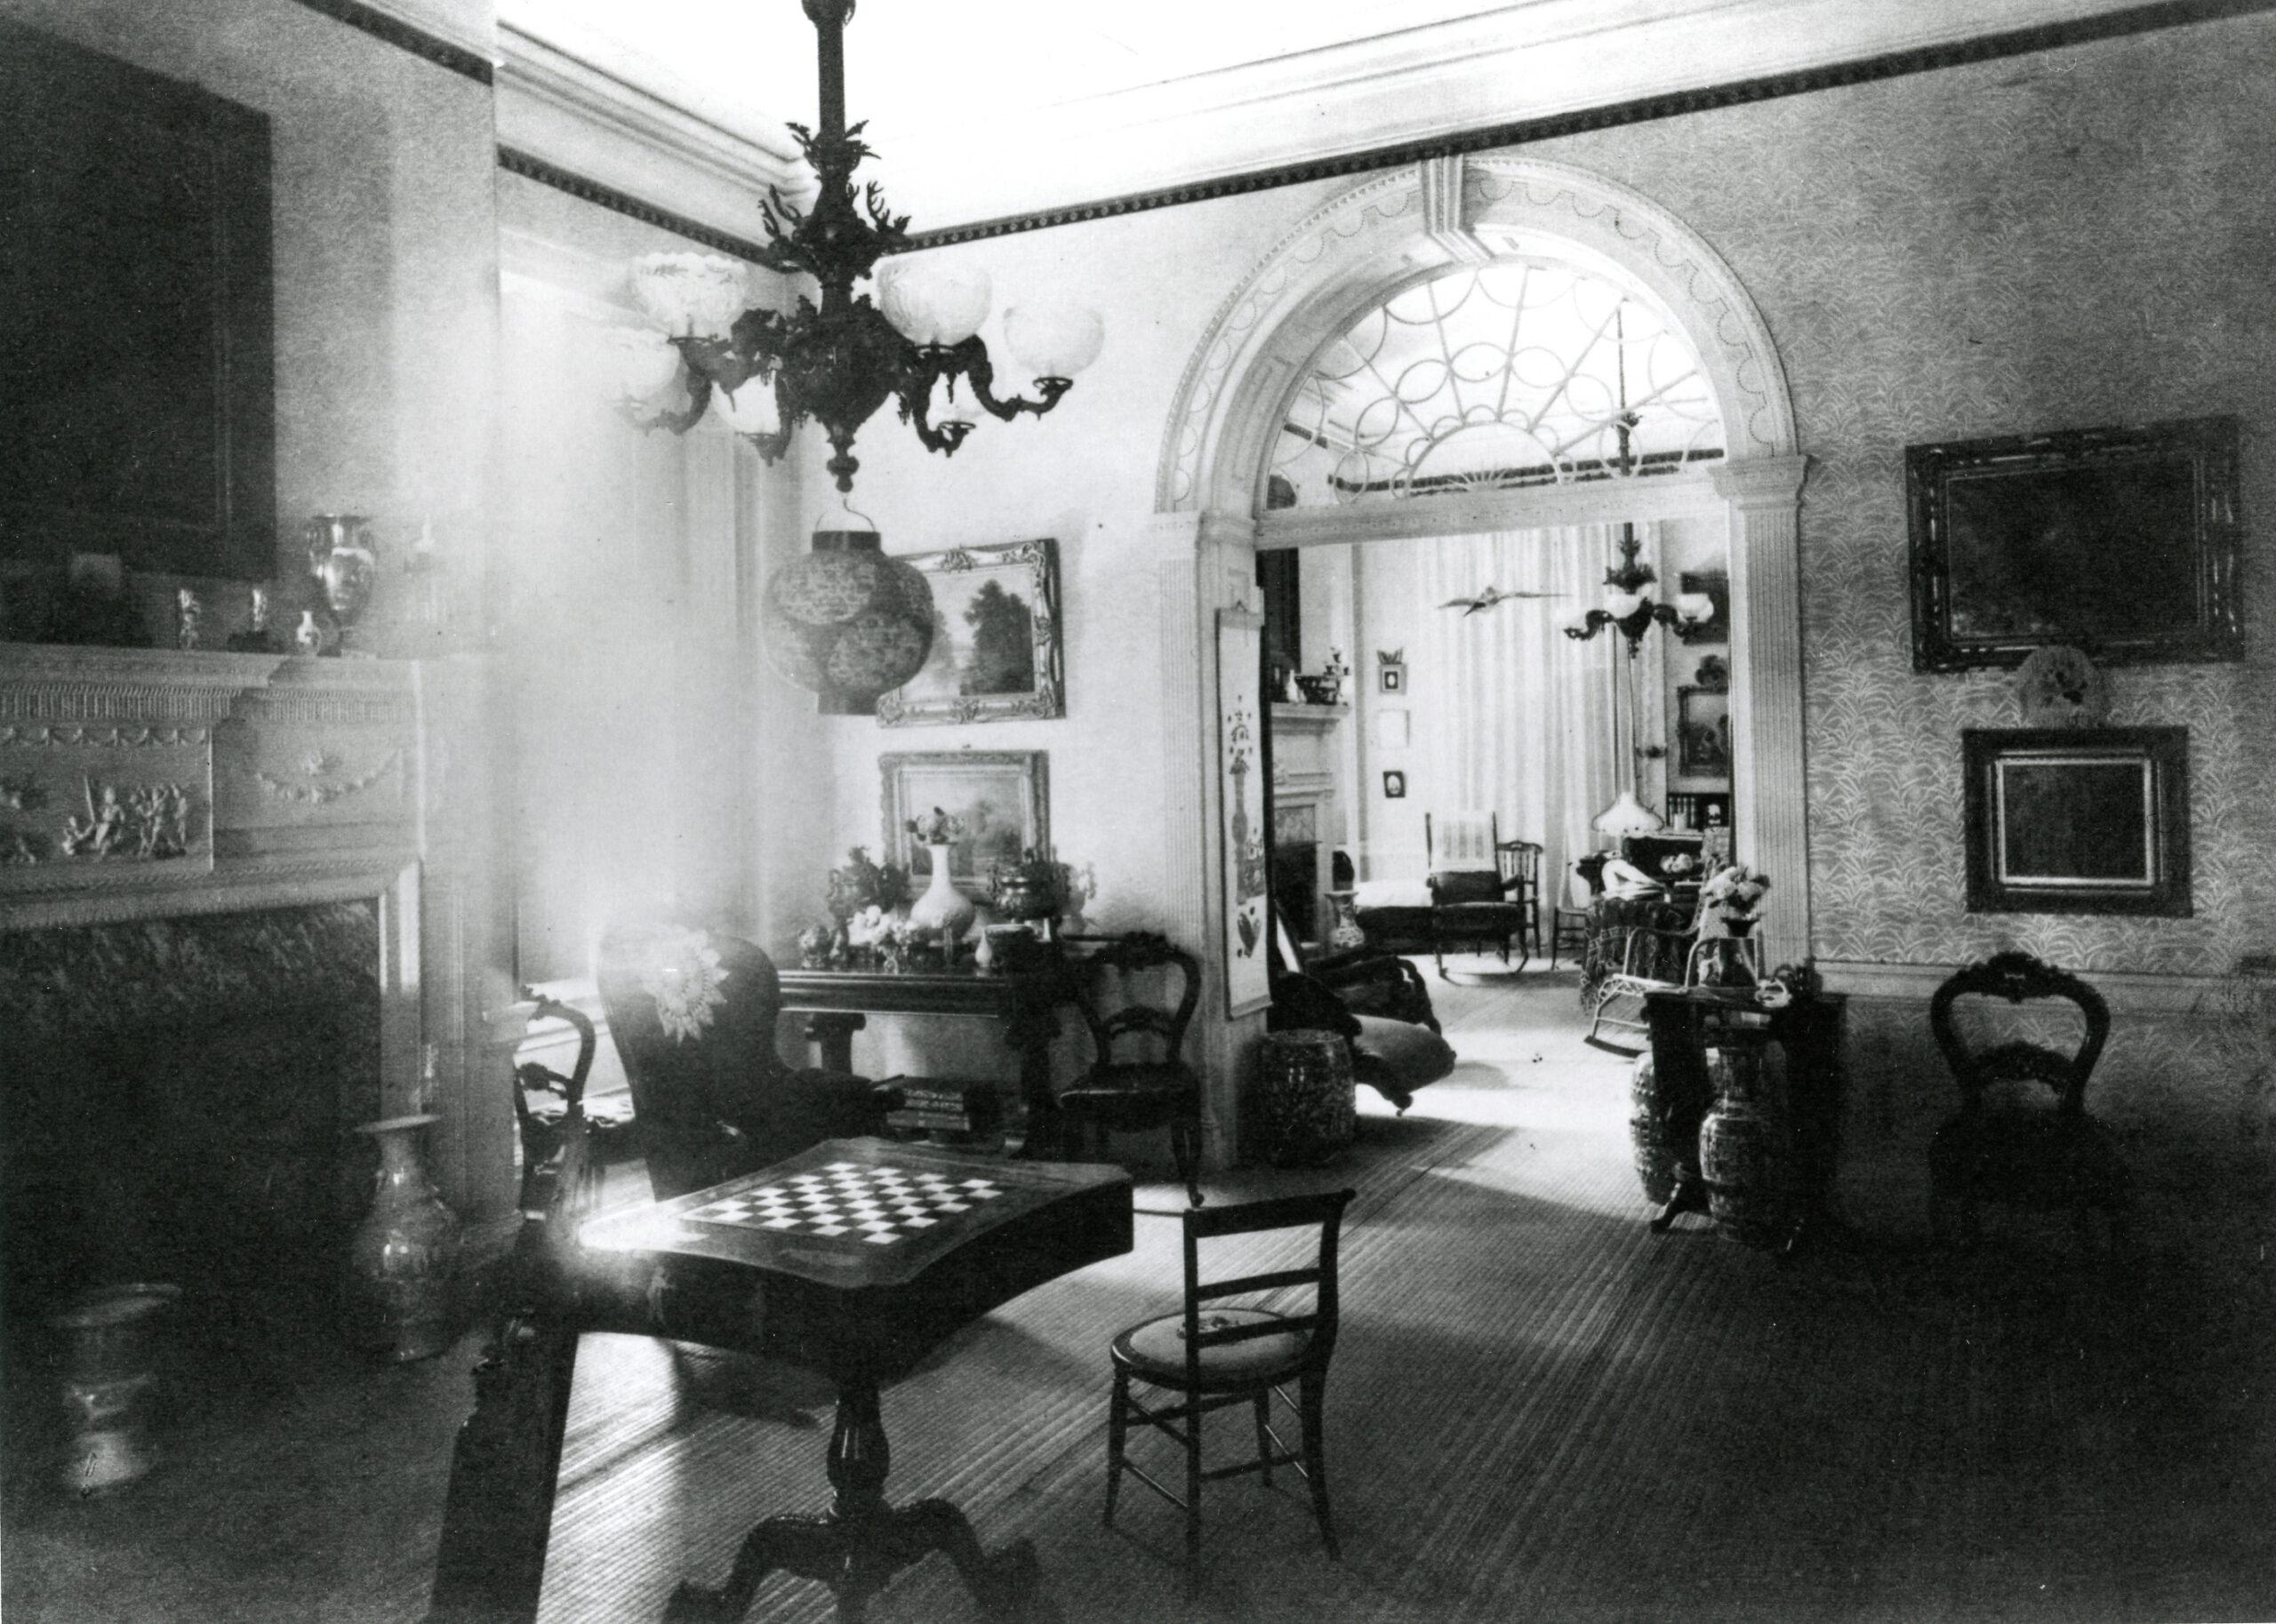 a balck-and-white photo of the interior of a house